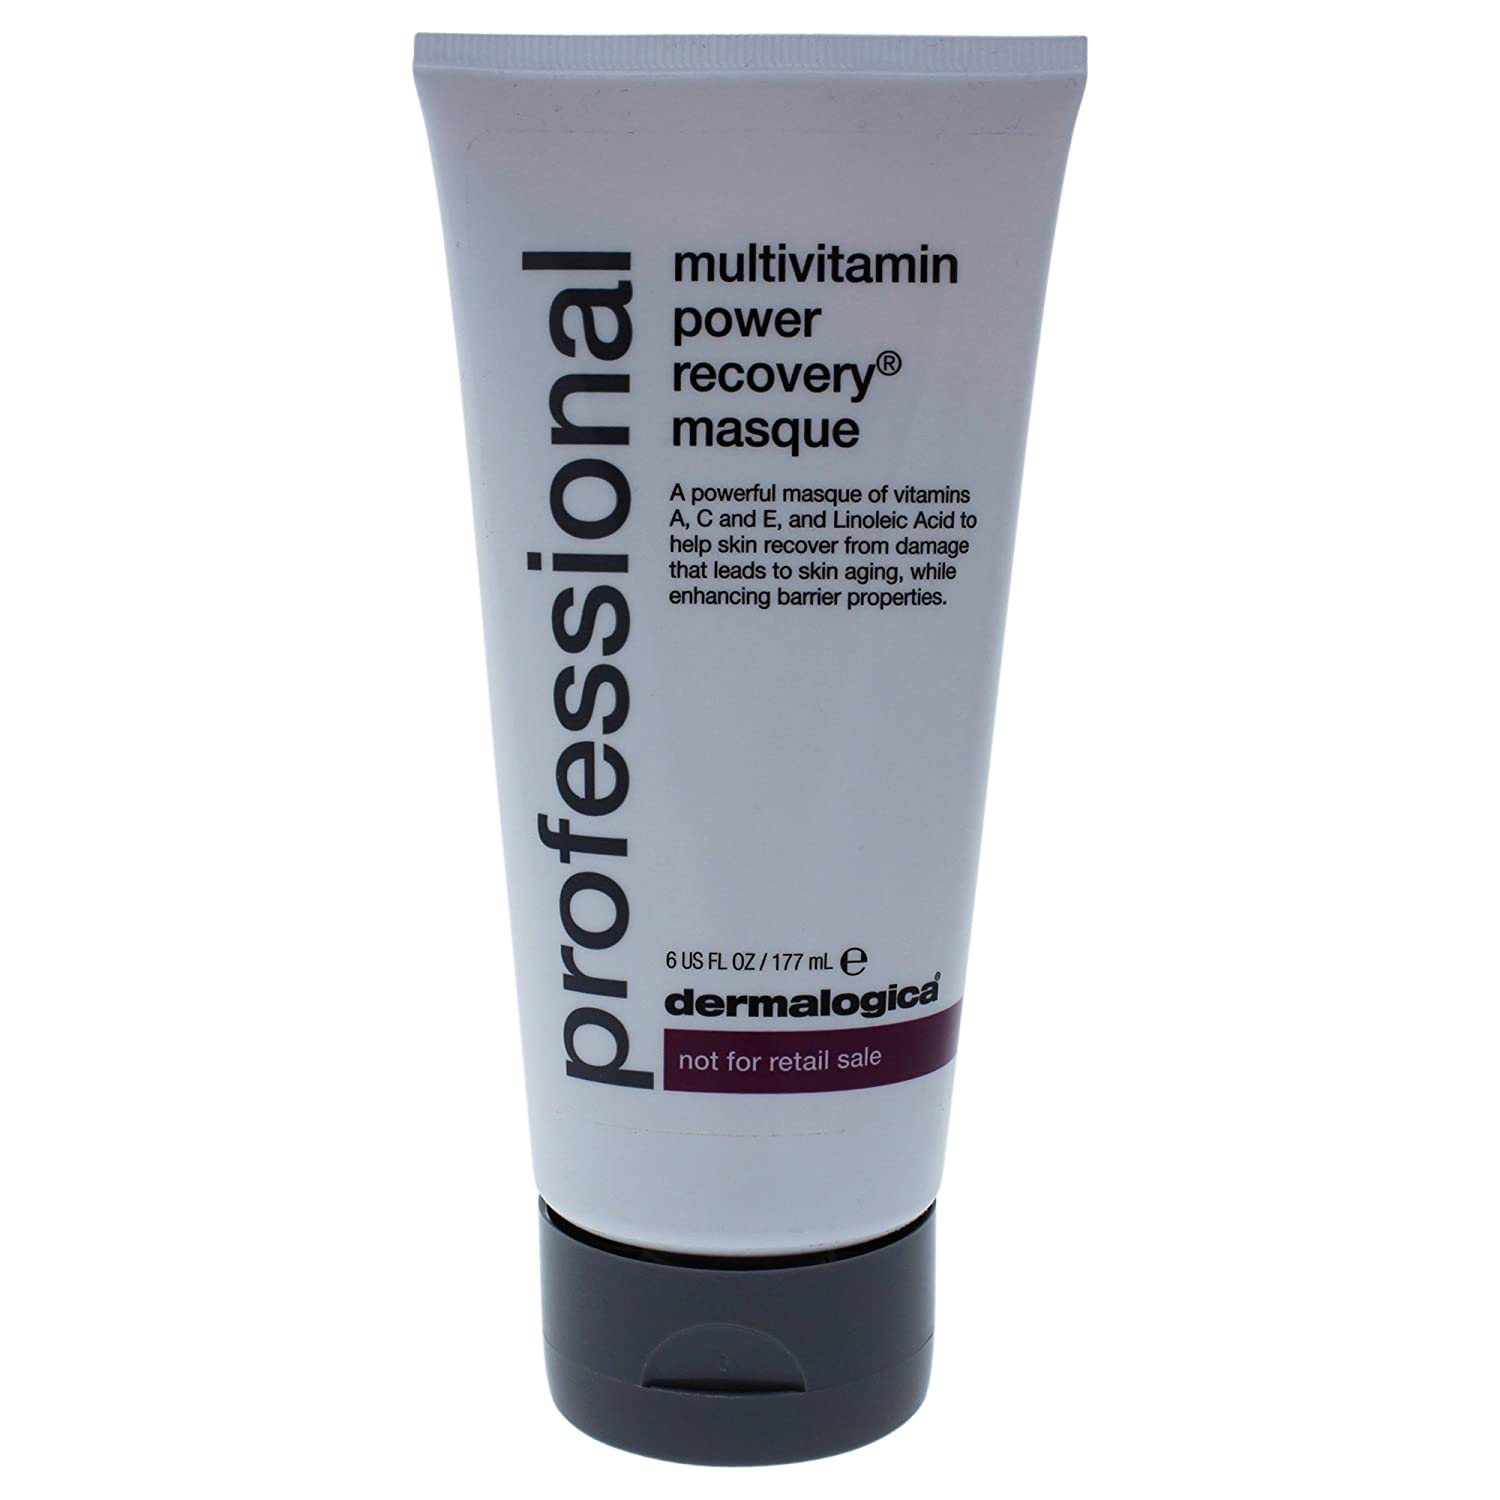 Dermalogica Multivitamin Power Recovery Masque, 2.5-Fluid-Ounce 110716